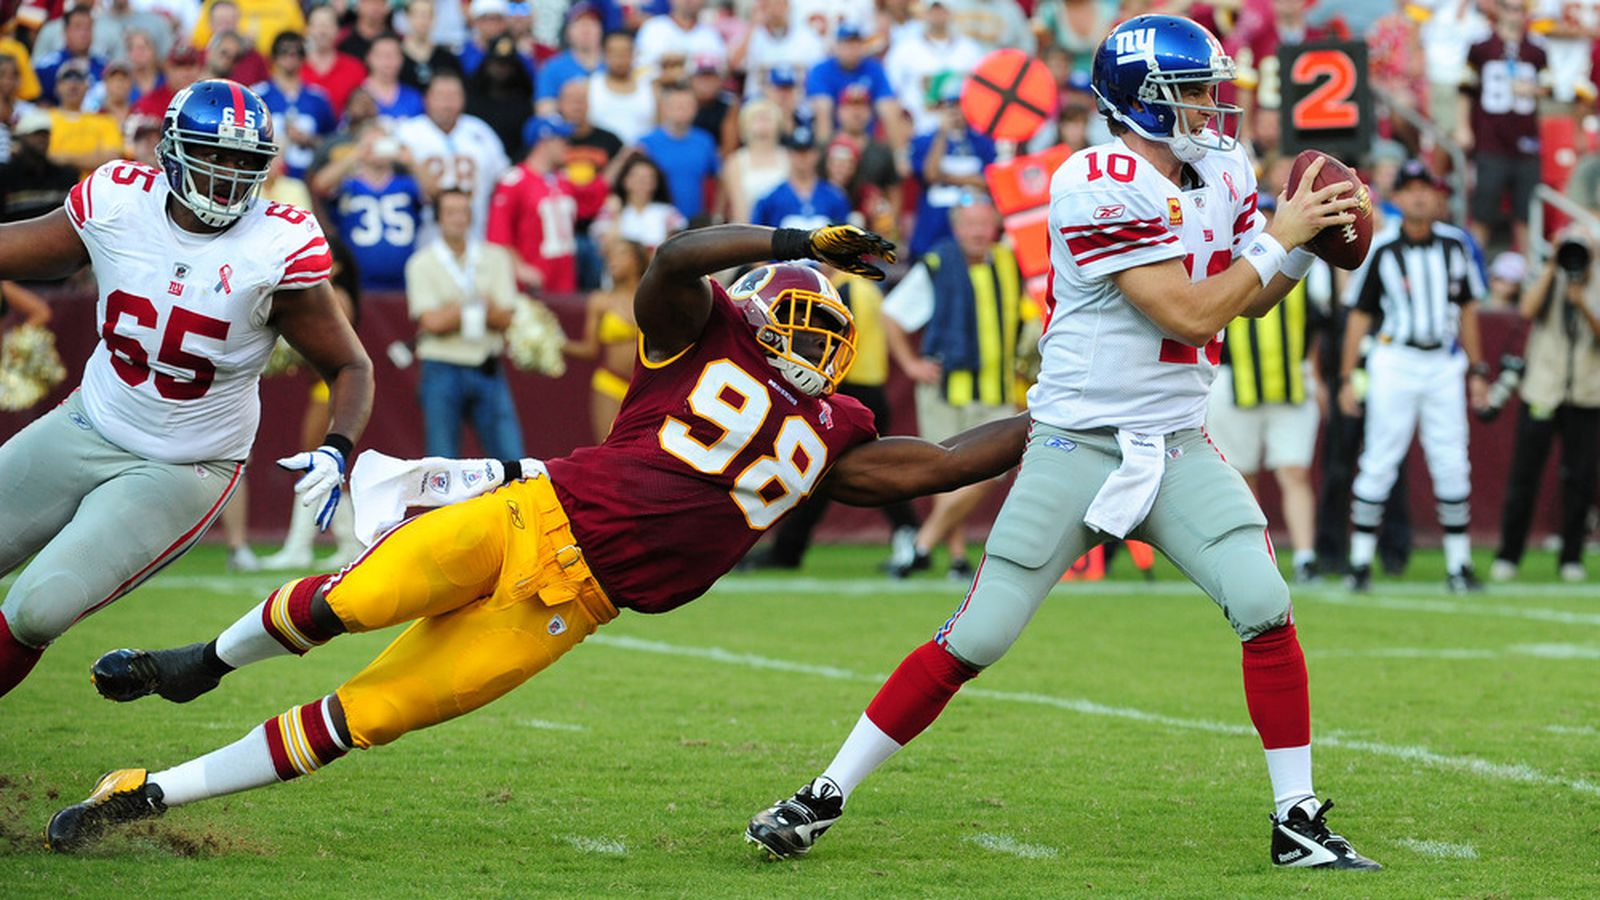 Redskinscom the official source of the latest Redskins news schedule tickets roster videos photos and gameday information